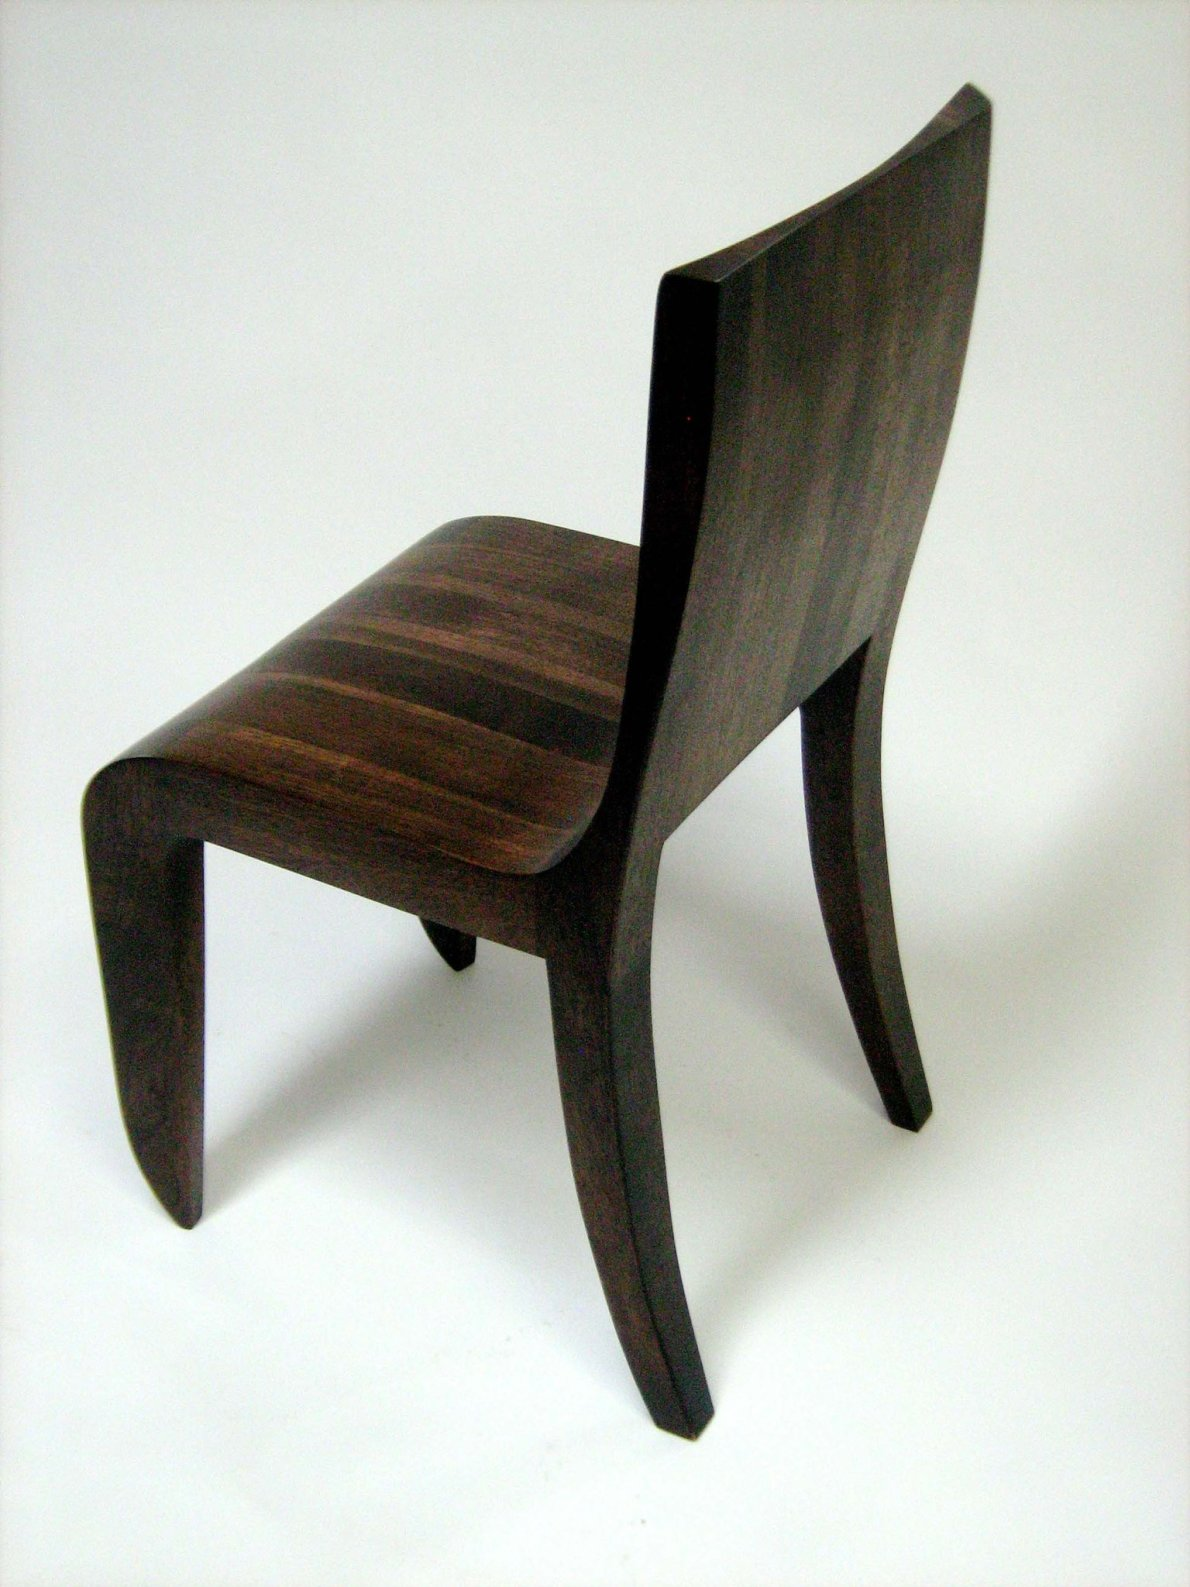 Jonathan Field, Opener Chair, 2012